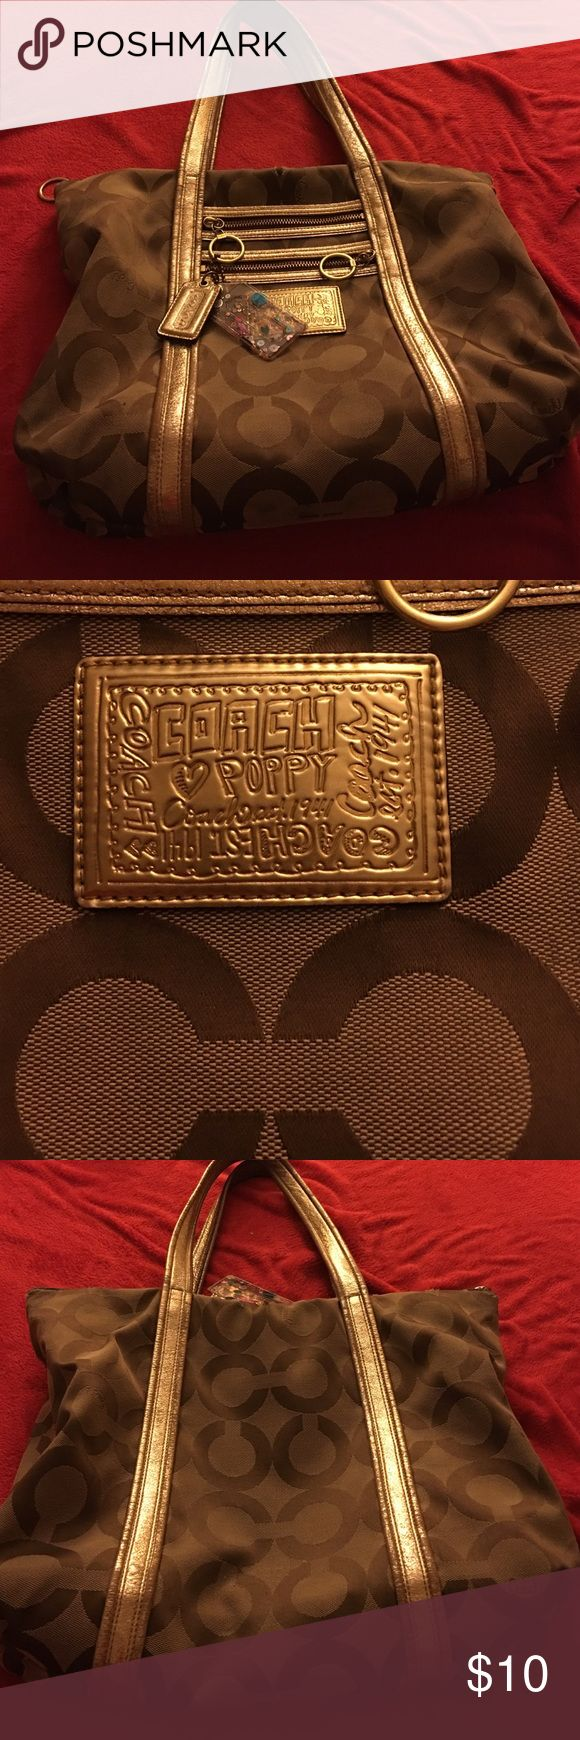 Coach poppy purse Beige and gold C POPPY purse. Used. Bought it 6 yrs ago. It's a really cute purse but it does have one little rip in the front and in the back. Coach Bags Shoulder Bags